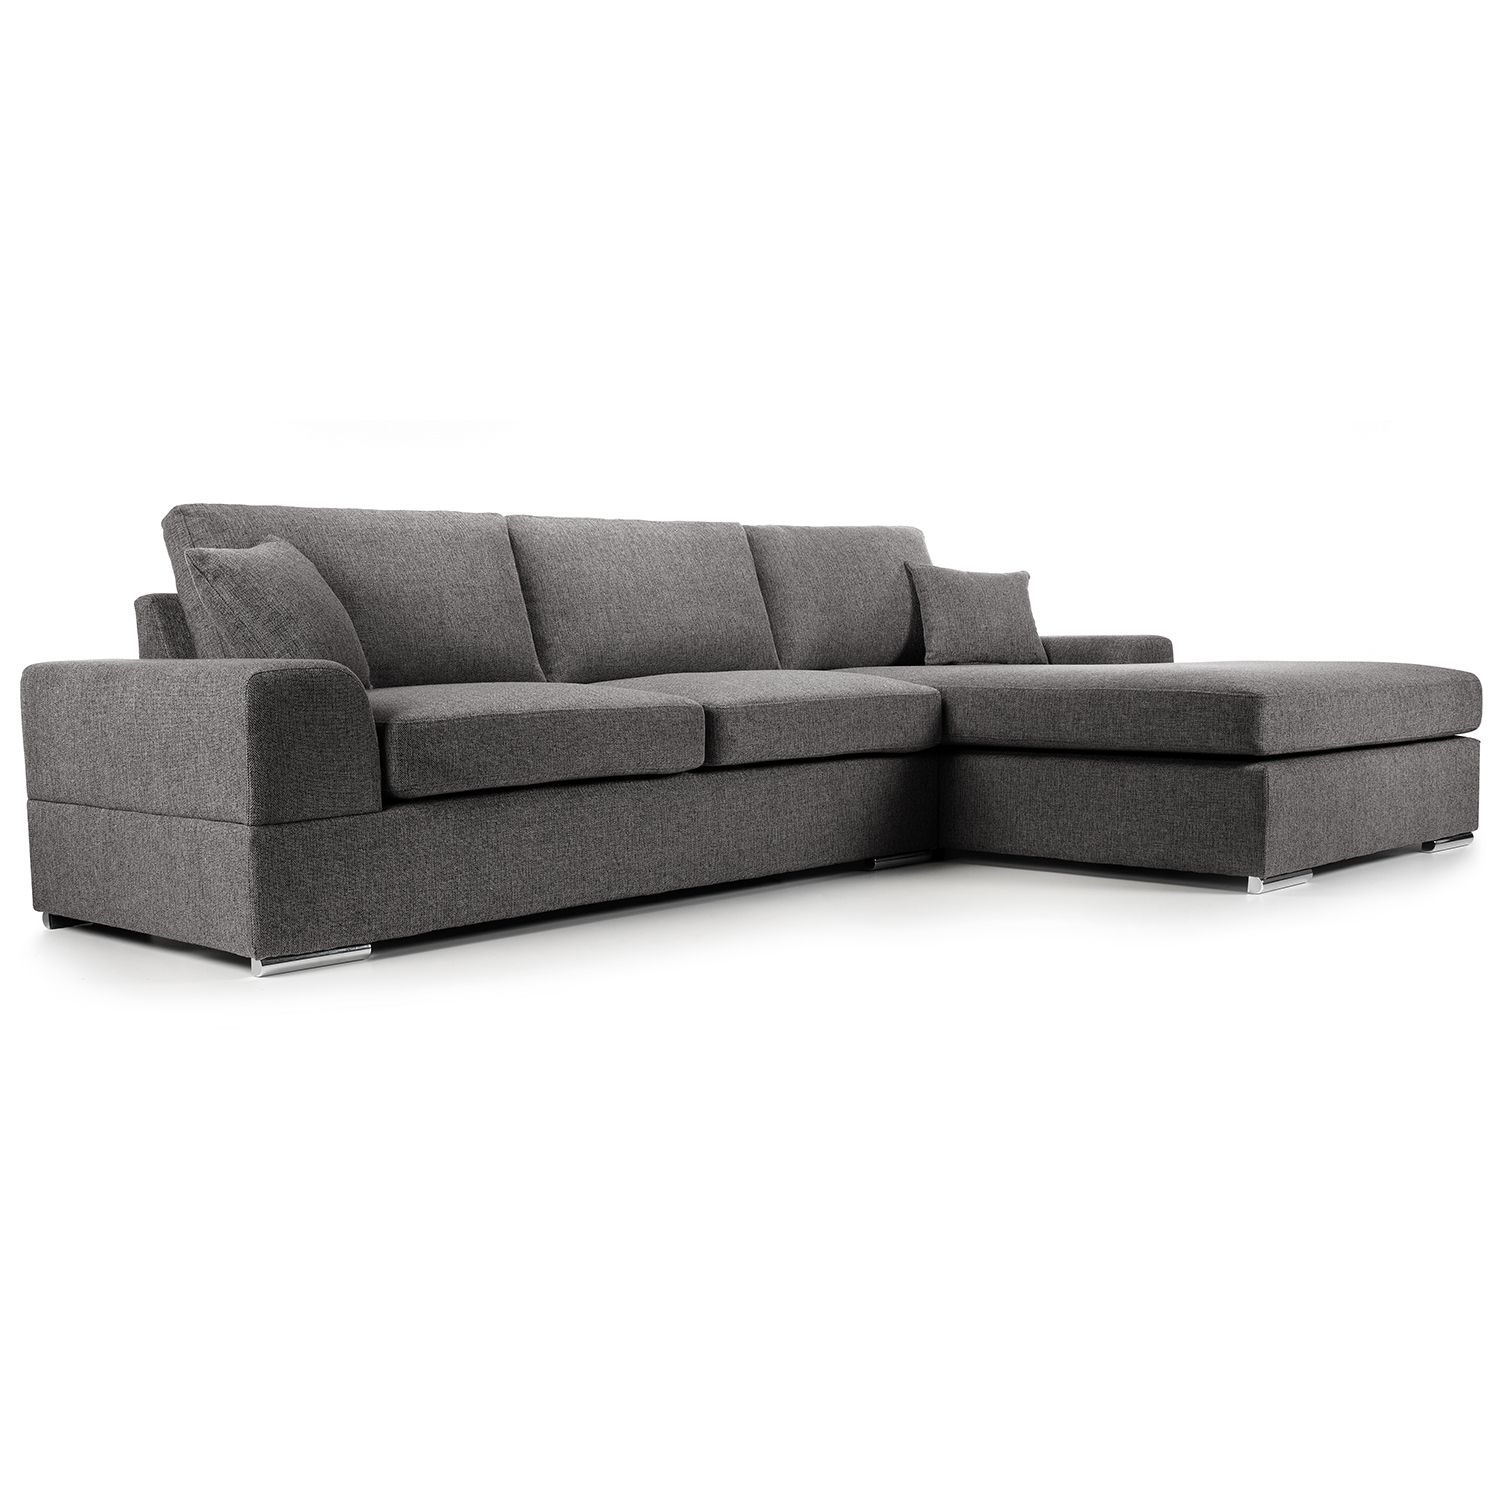 799 Vedori Corner Chaise Sofa Next Day Delivery From Worlds Everything For The Home